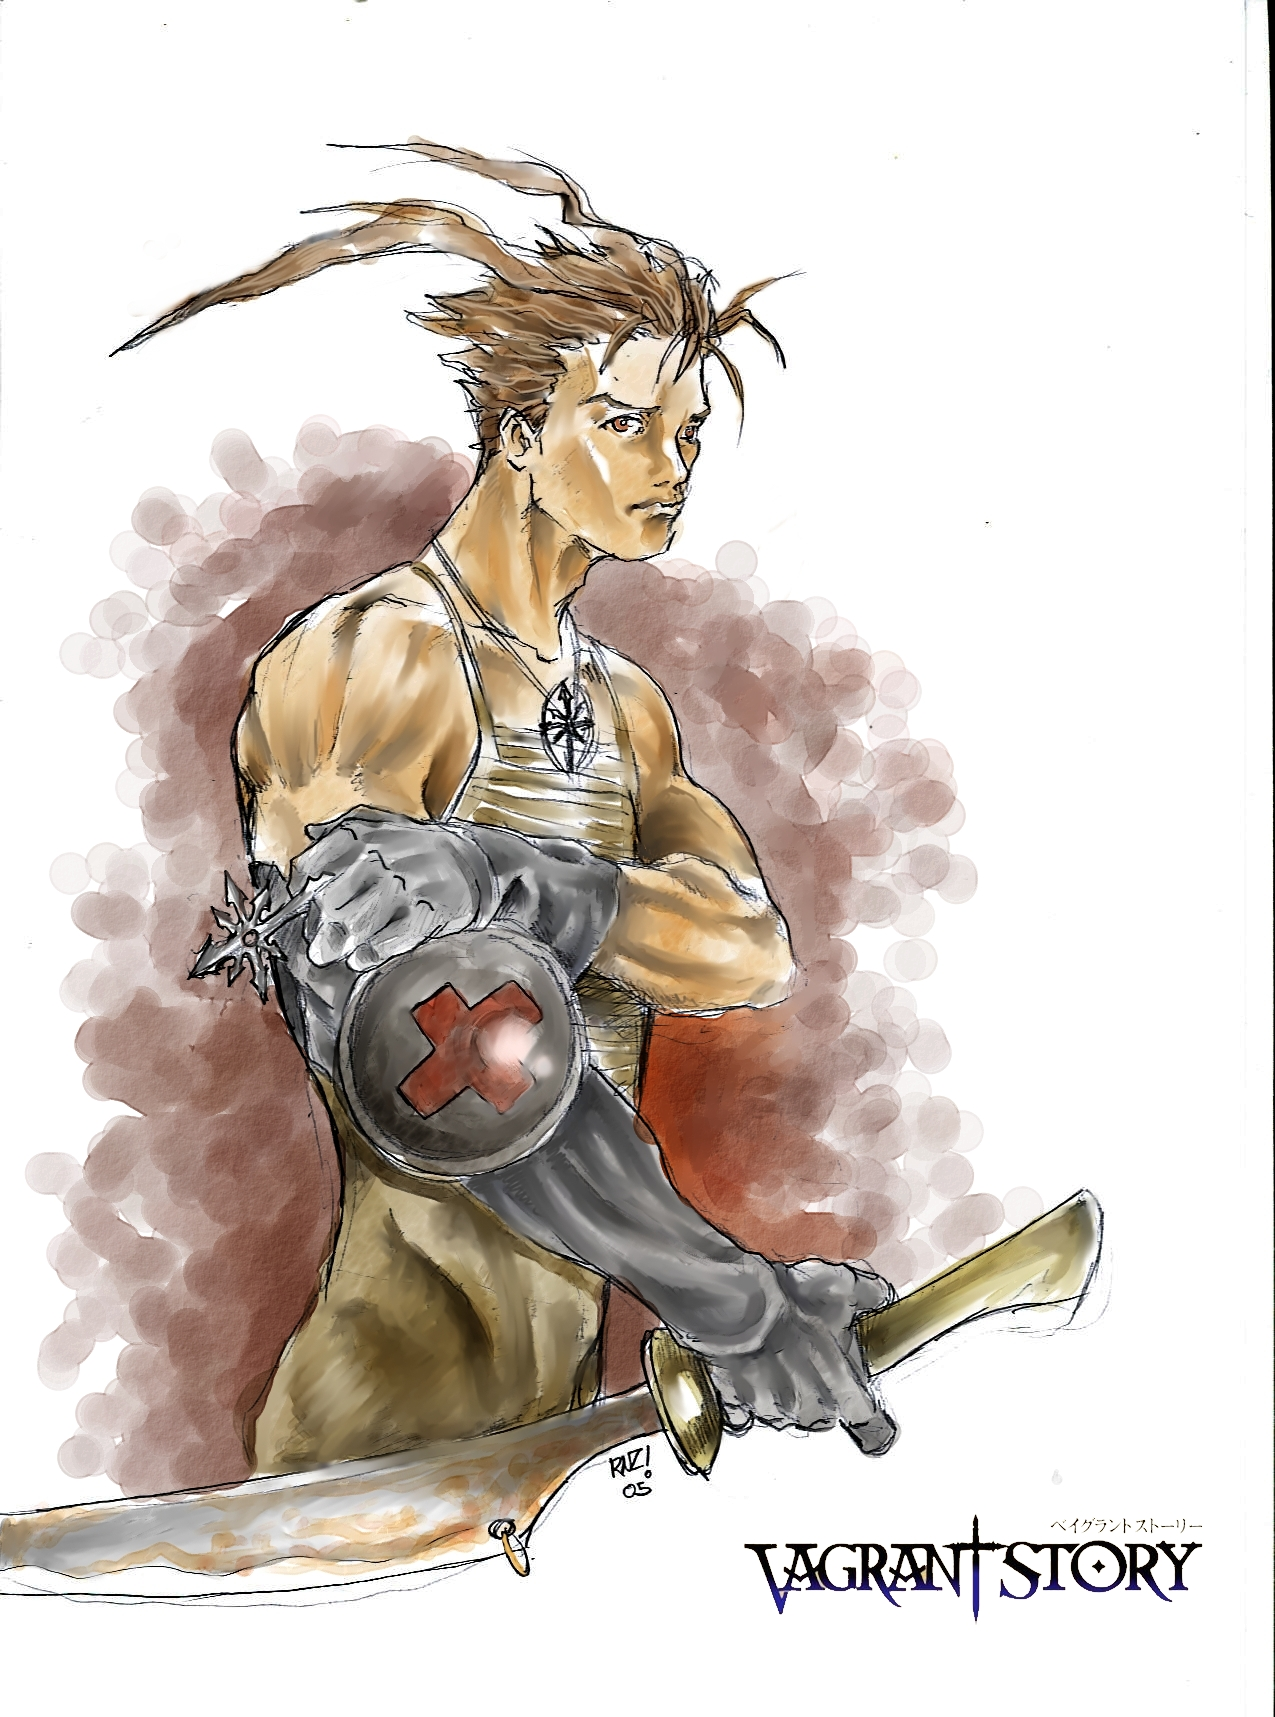 Vagrant Story Images Crazy Gallery 1275x1717